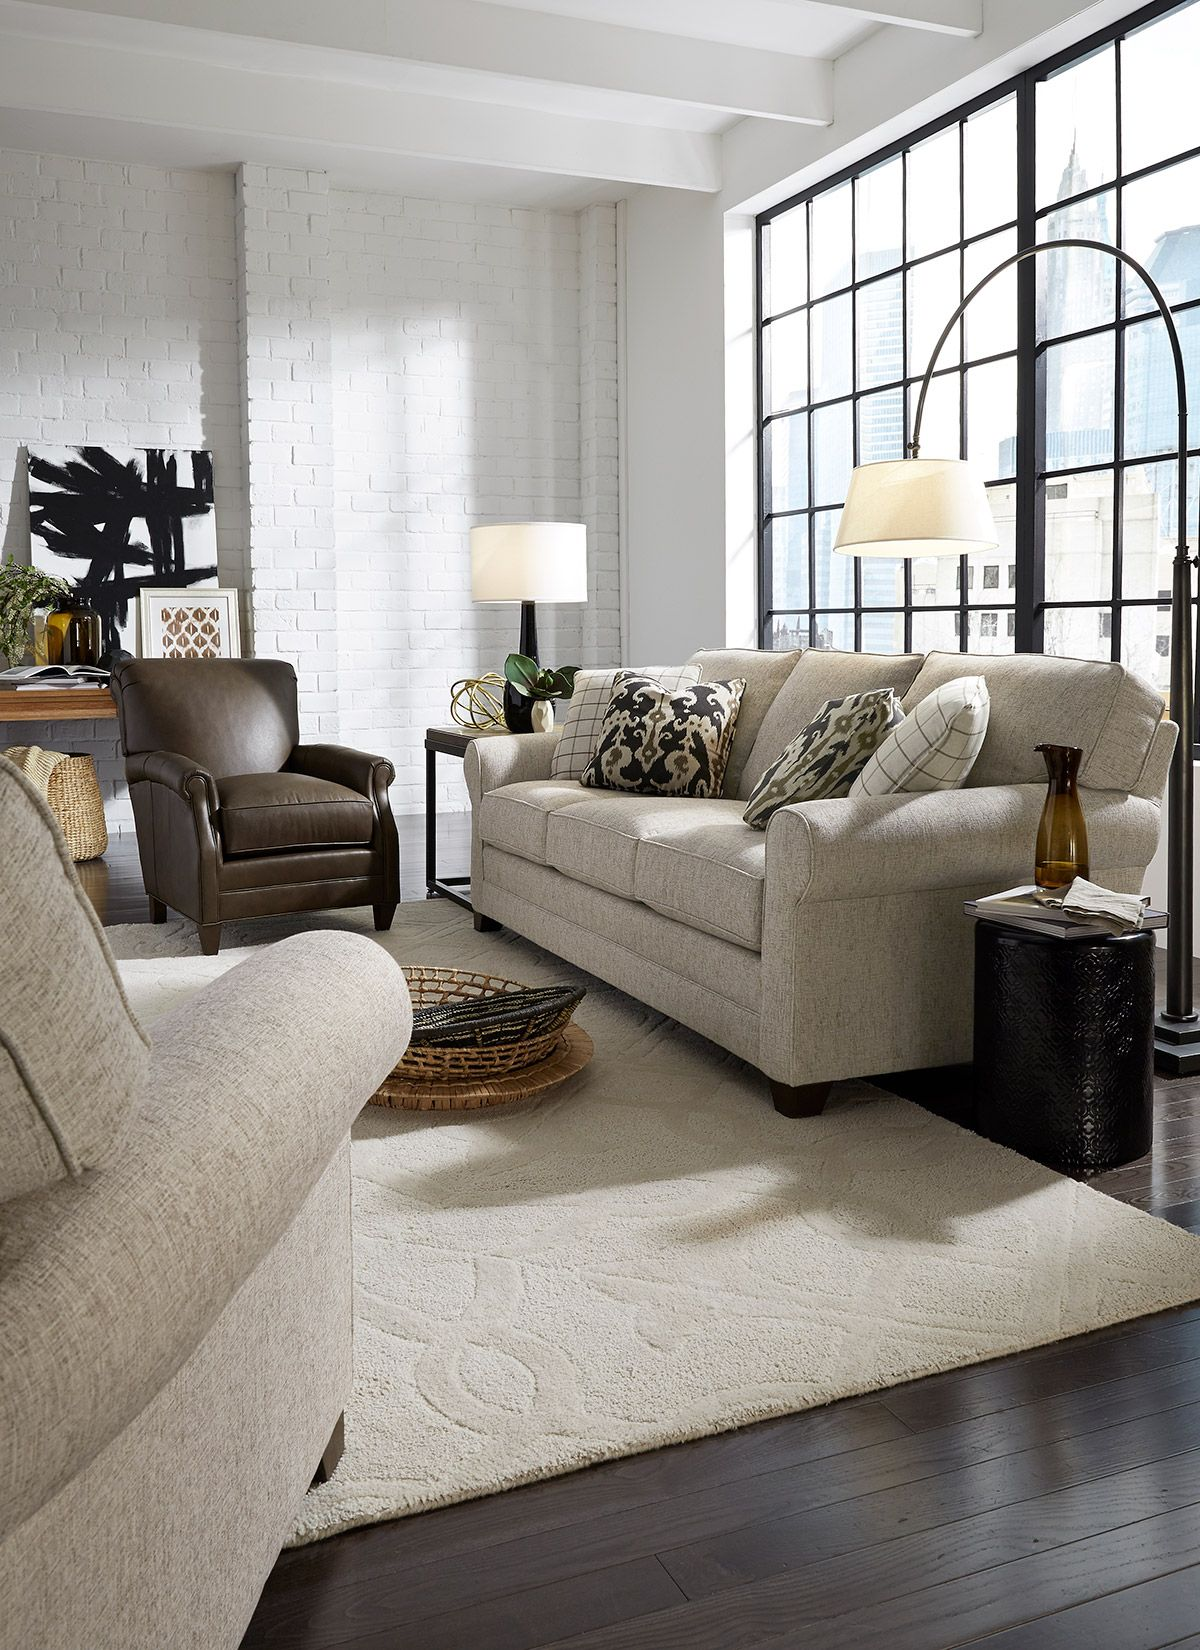 Furniture Shopping the Smart Way - 7 Helpful Tips | Living ...